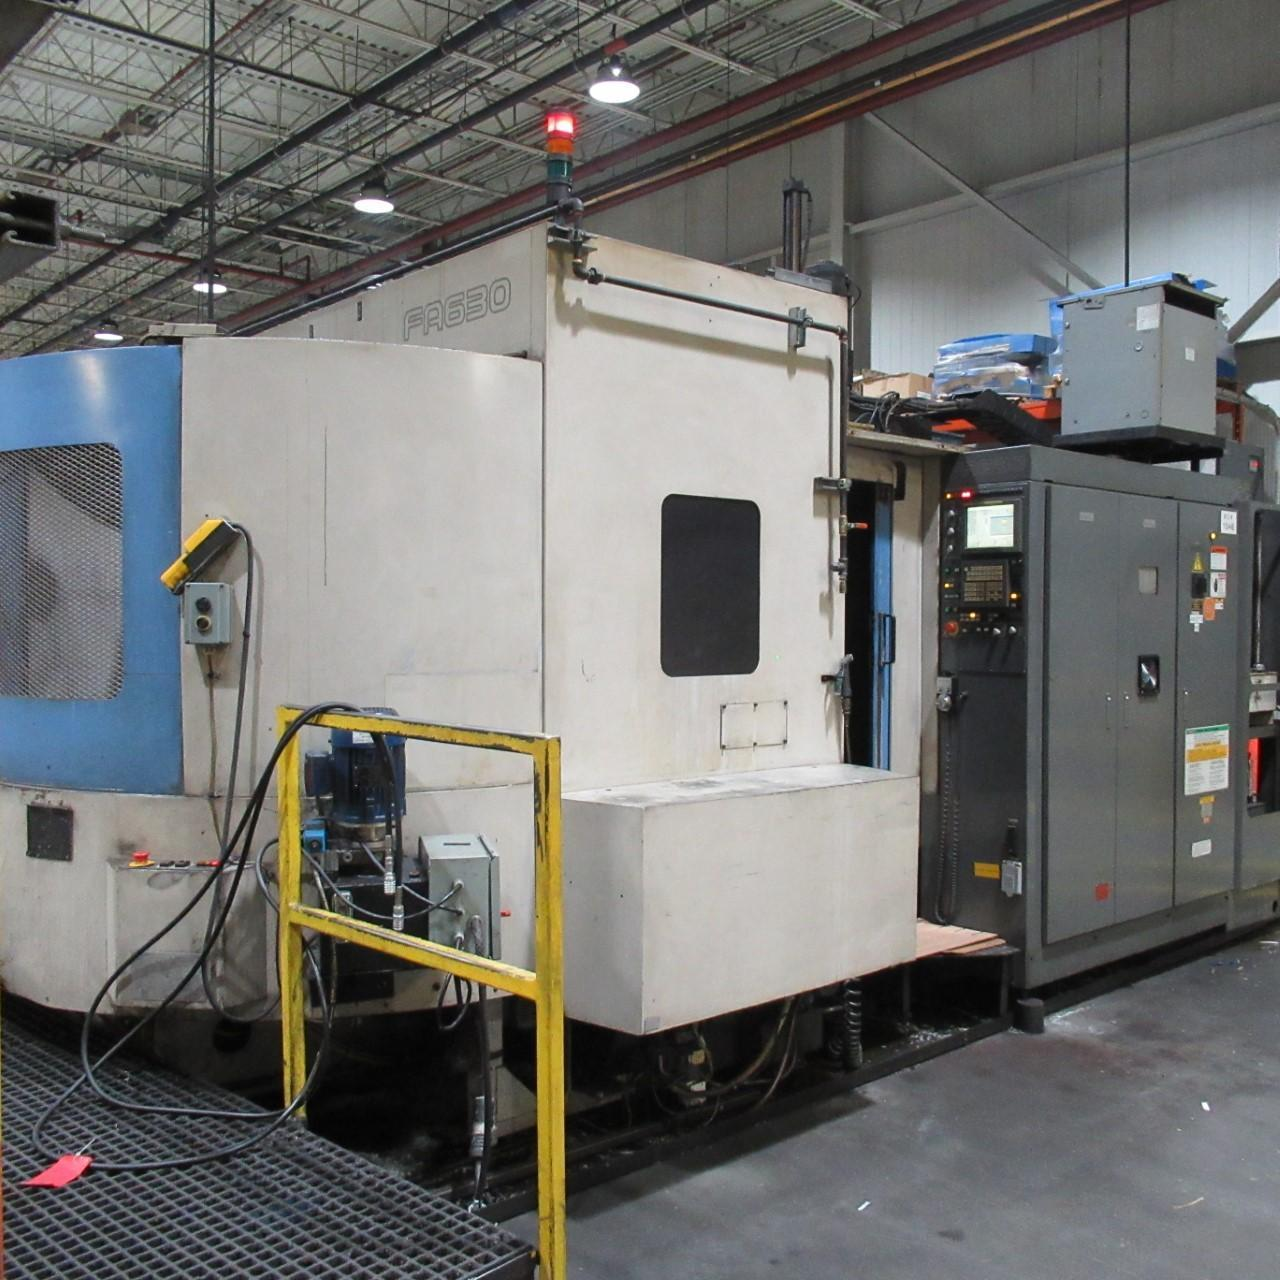 TOYODA FA-630 HORIZONTAL MACHINING CENTER, HIGH PRESSURE THROUGH SPINDLE COOLANT, YEAR 2003/12